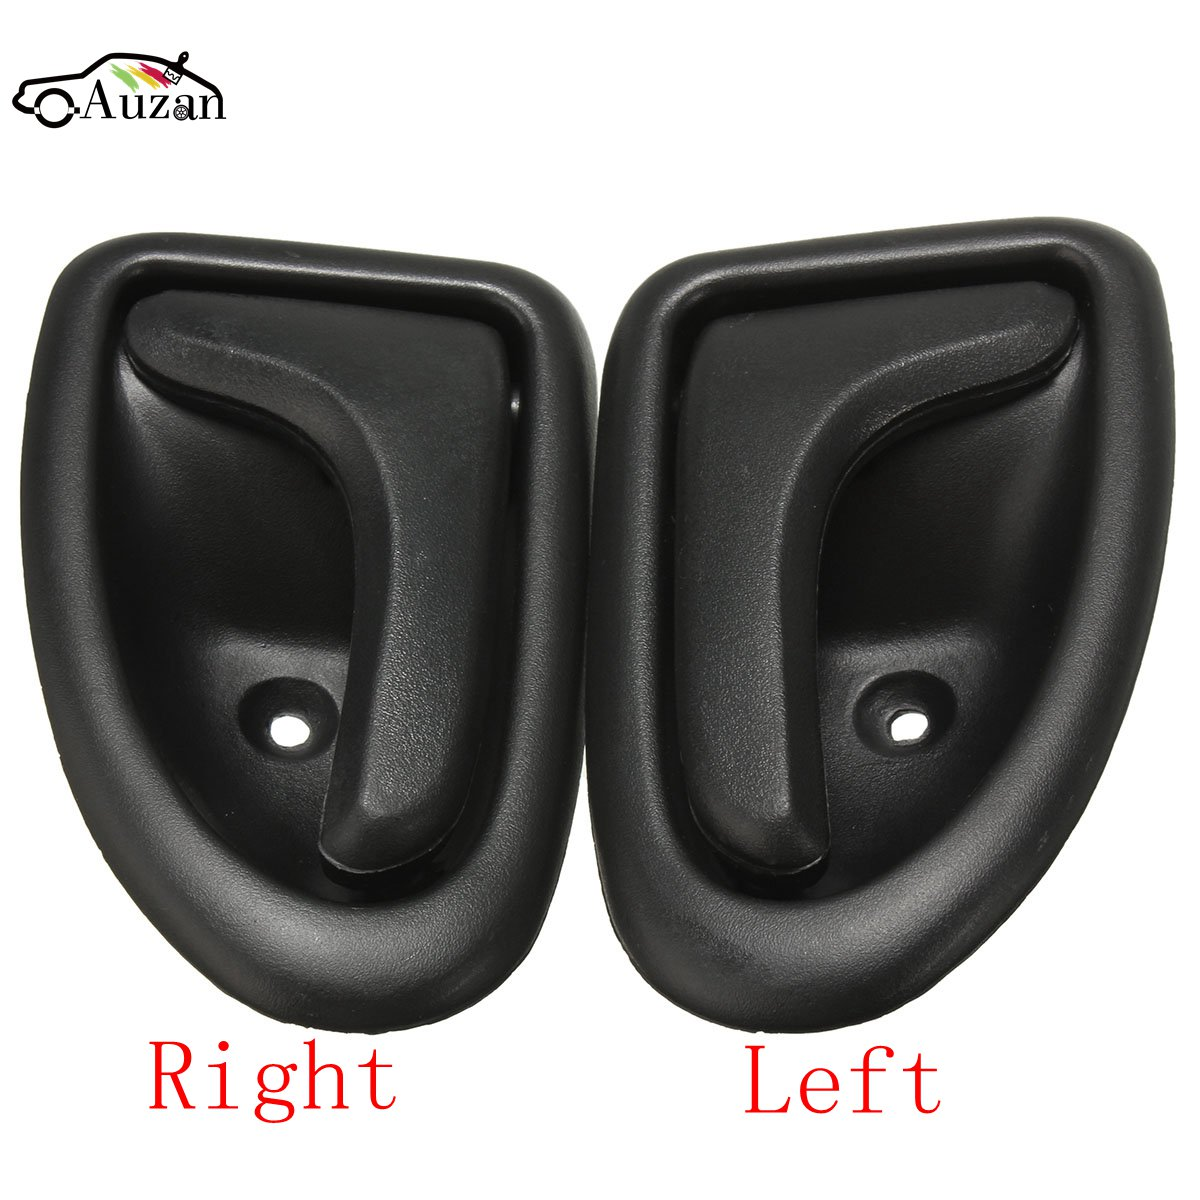 black left right side car interior door handle knob hand handles for renault clio 1999 up scenic. Black Bedroom Furniture Sets. Home Design Ideas